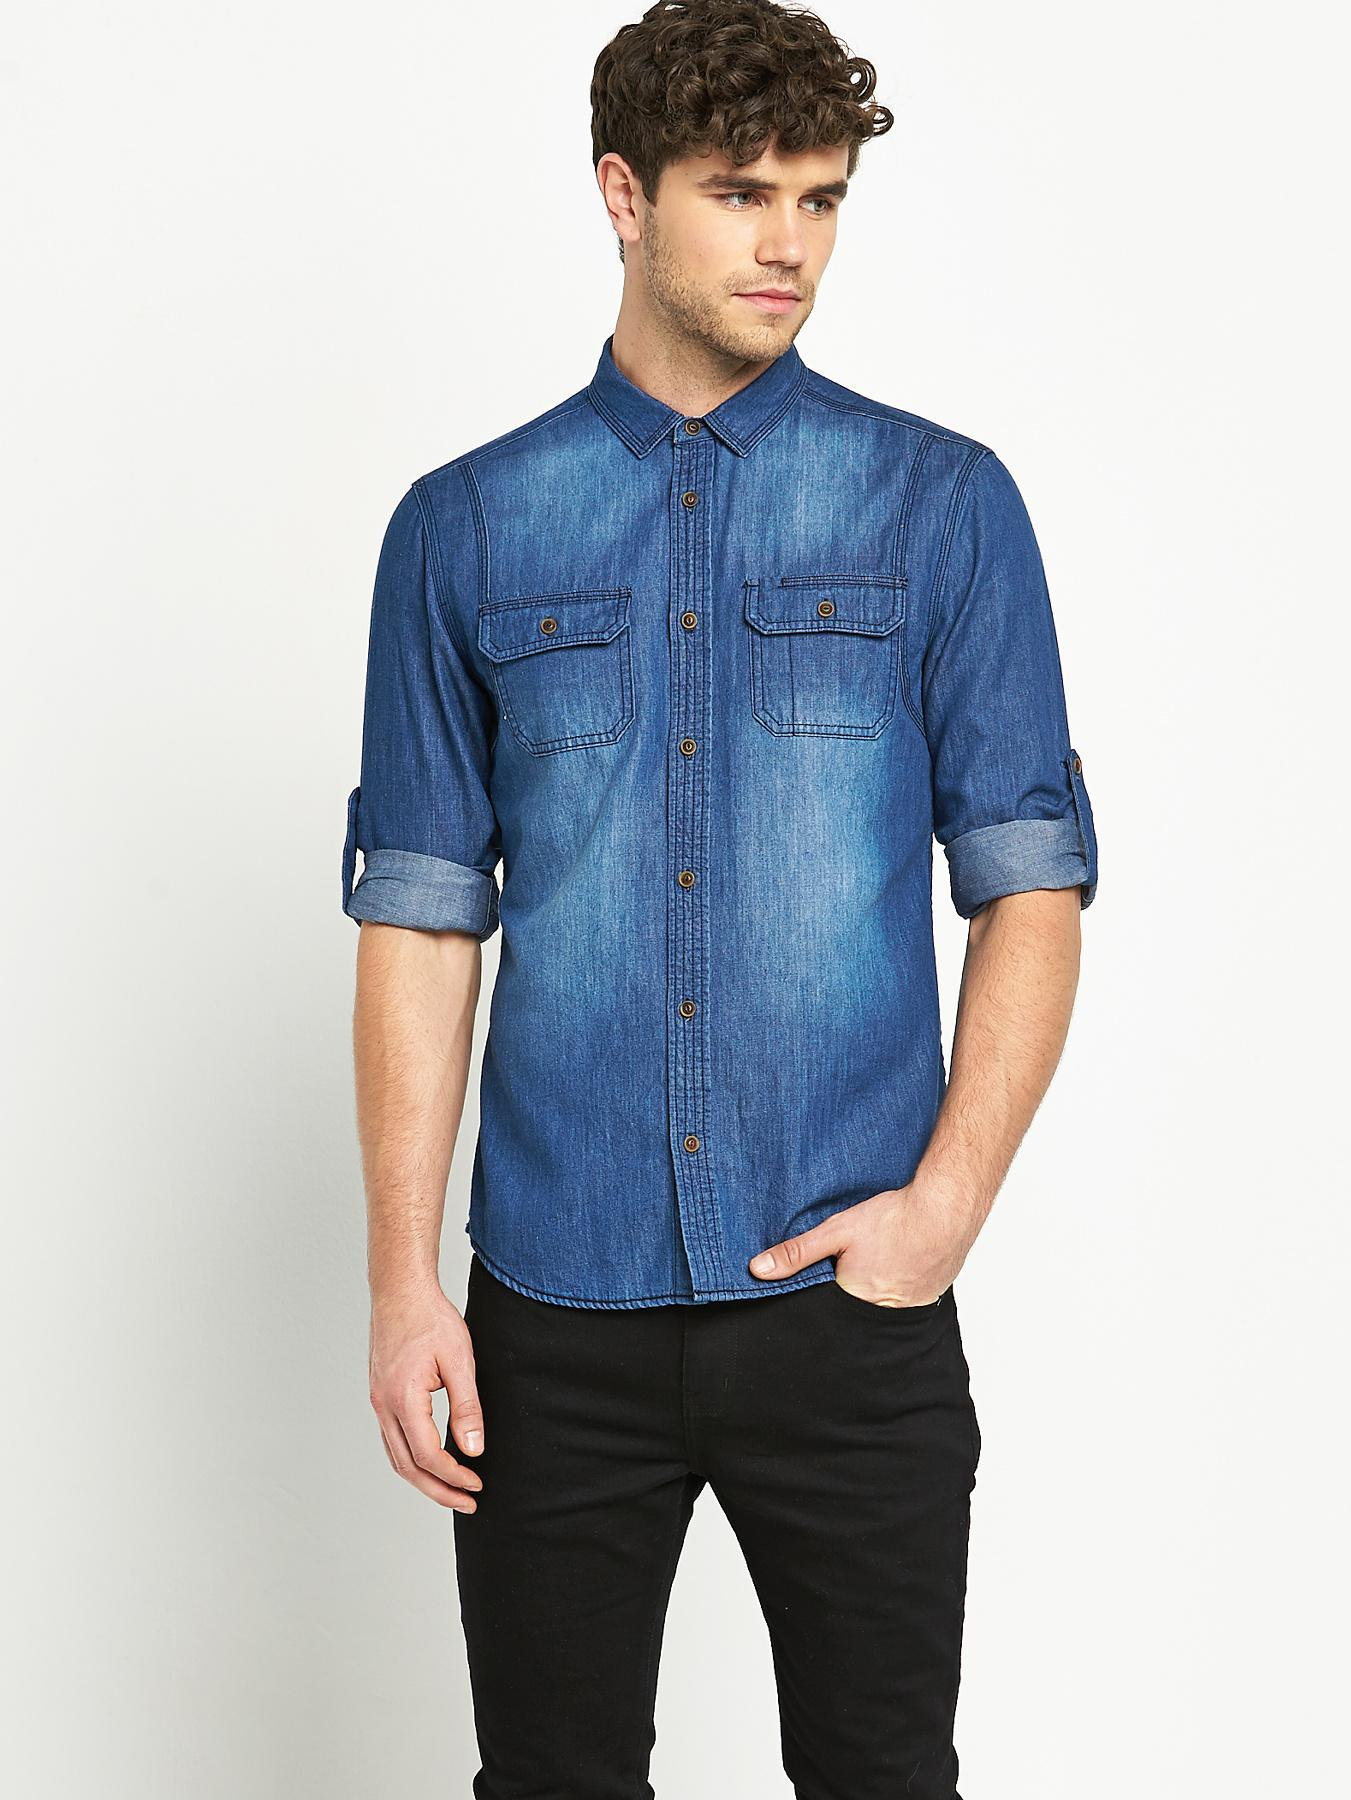 Goodsouls Mens Long Sleeve Double Pocket Denim Shirt - Blue, Blue